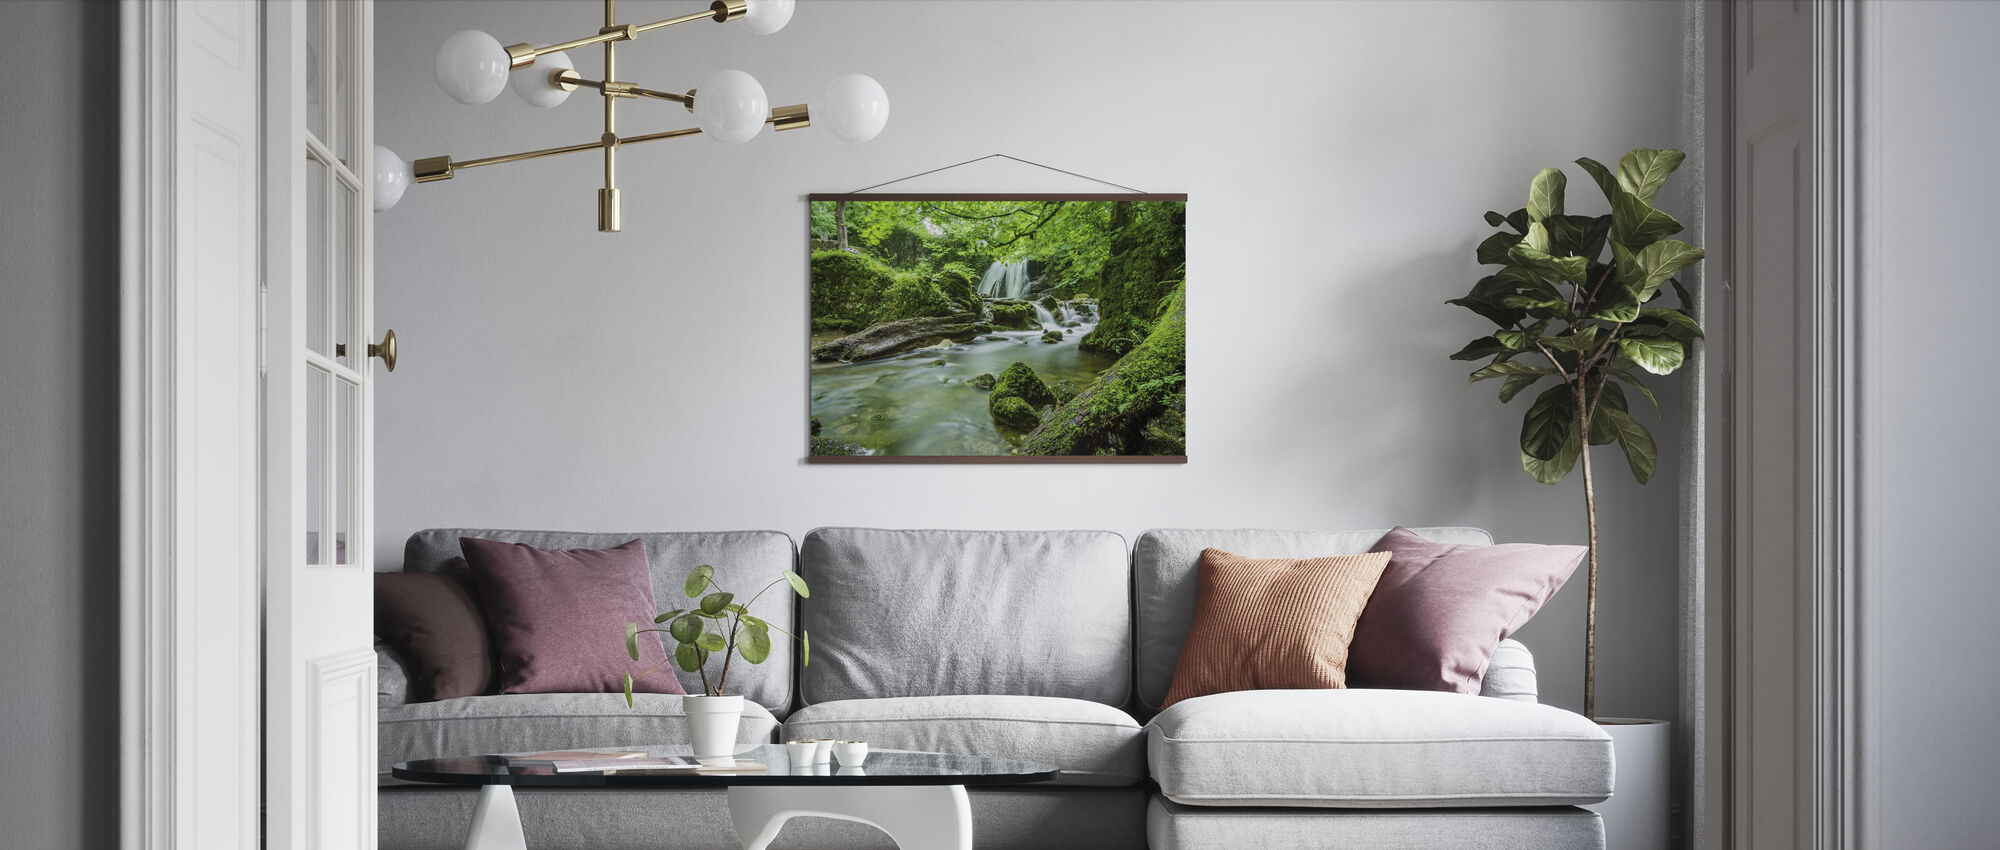 Waterfall Stream - Poster - Living Room